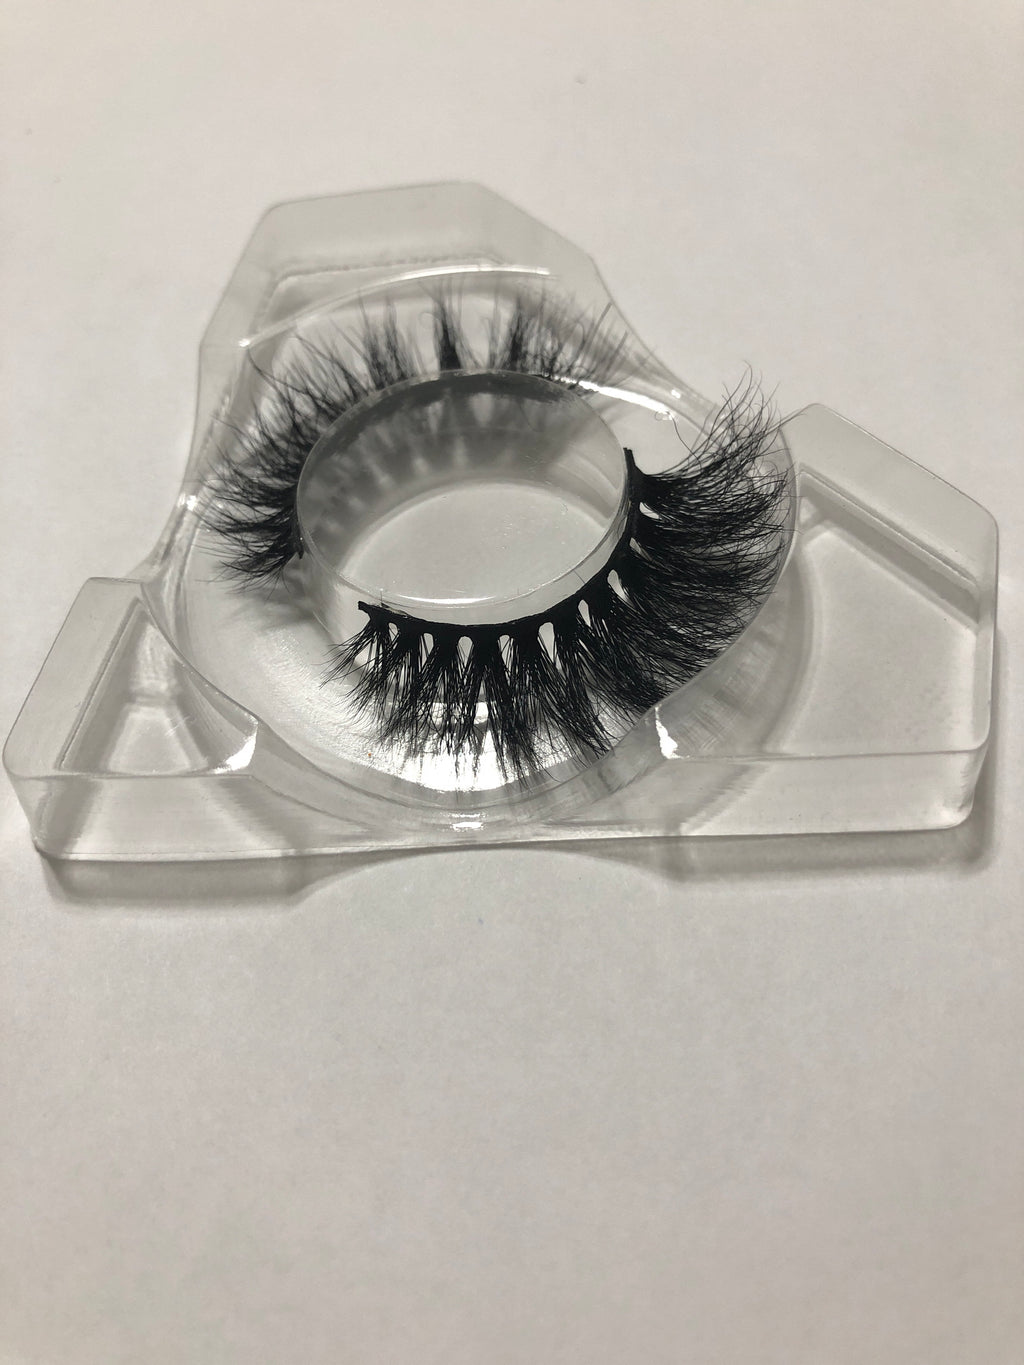 STEPHANIE LASHES